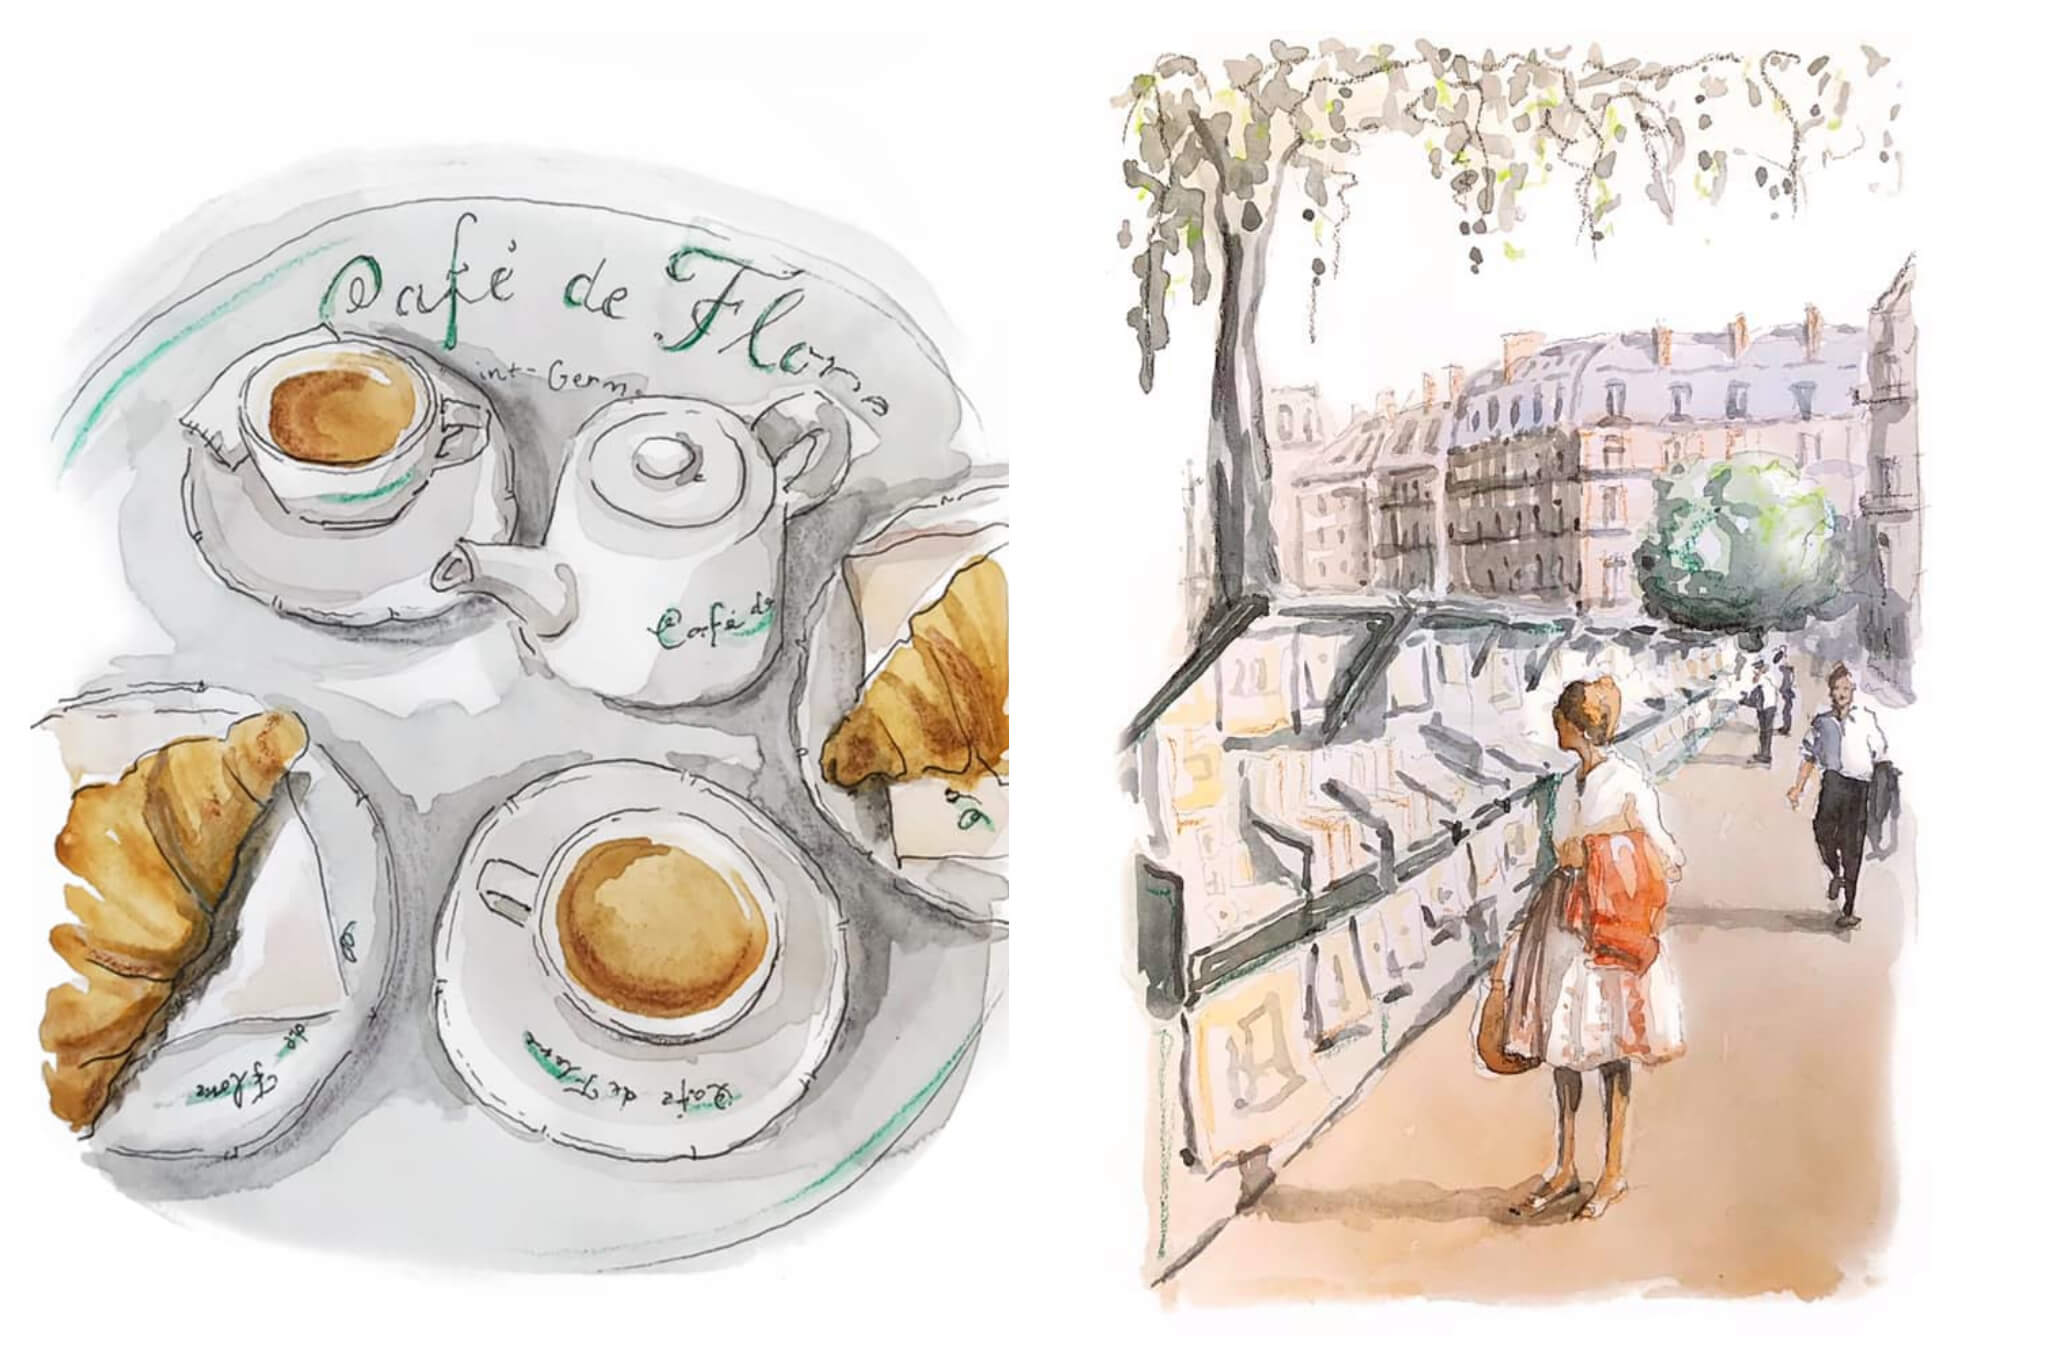 Left: A watercolor image of coffee and croissants on a table at the famous Café de Flore in Paris, Right: A watercolor image of a woman in a white dress looking at the paintings which line the Seine in the middle of Paris.